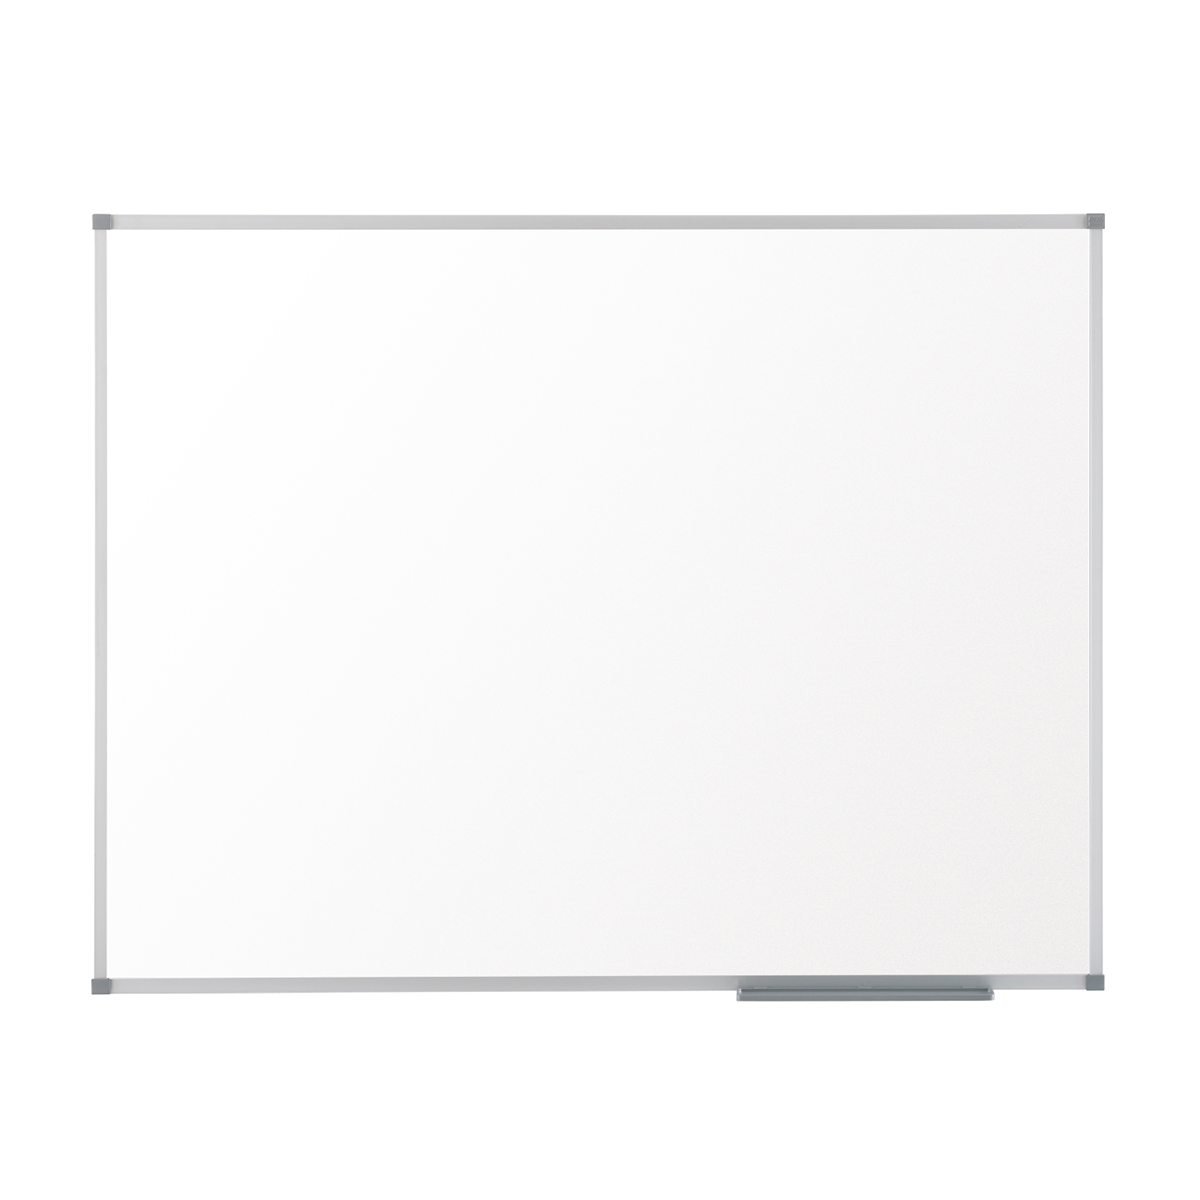 Nobo 1905205 Basic Melamine Non Magnetic Whiteboard with Basic Trim 1800 x 1200mm